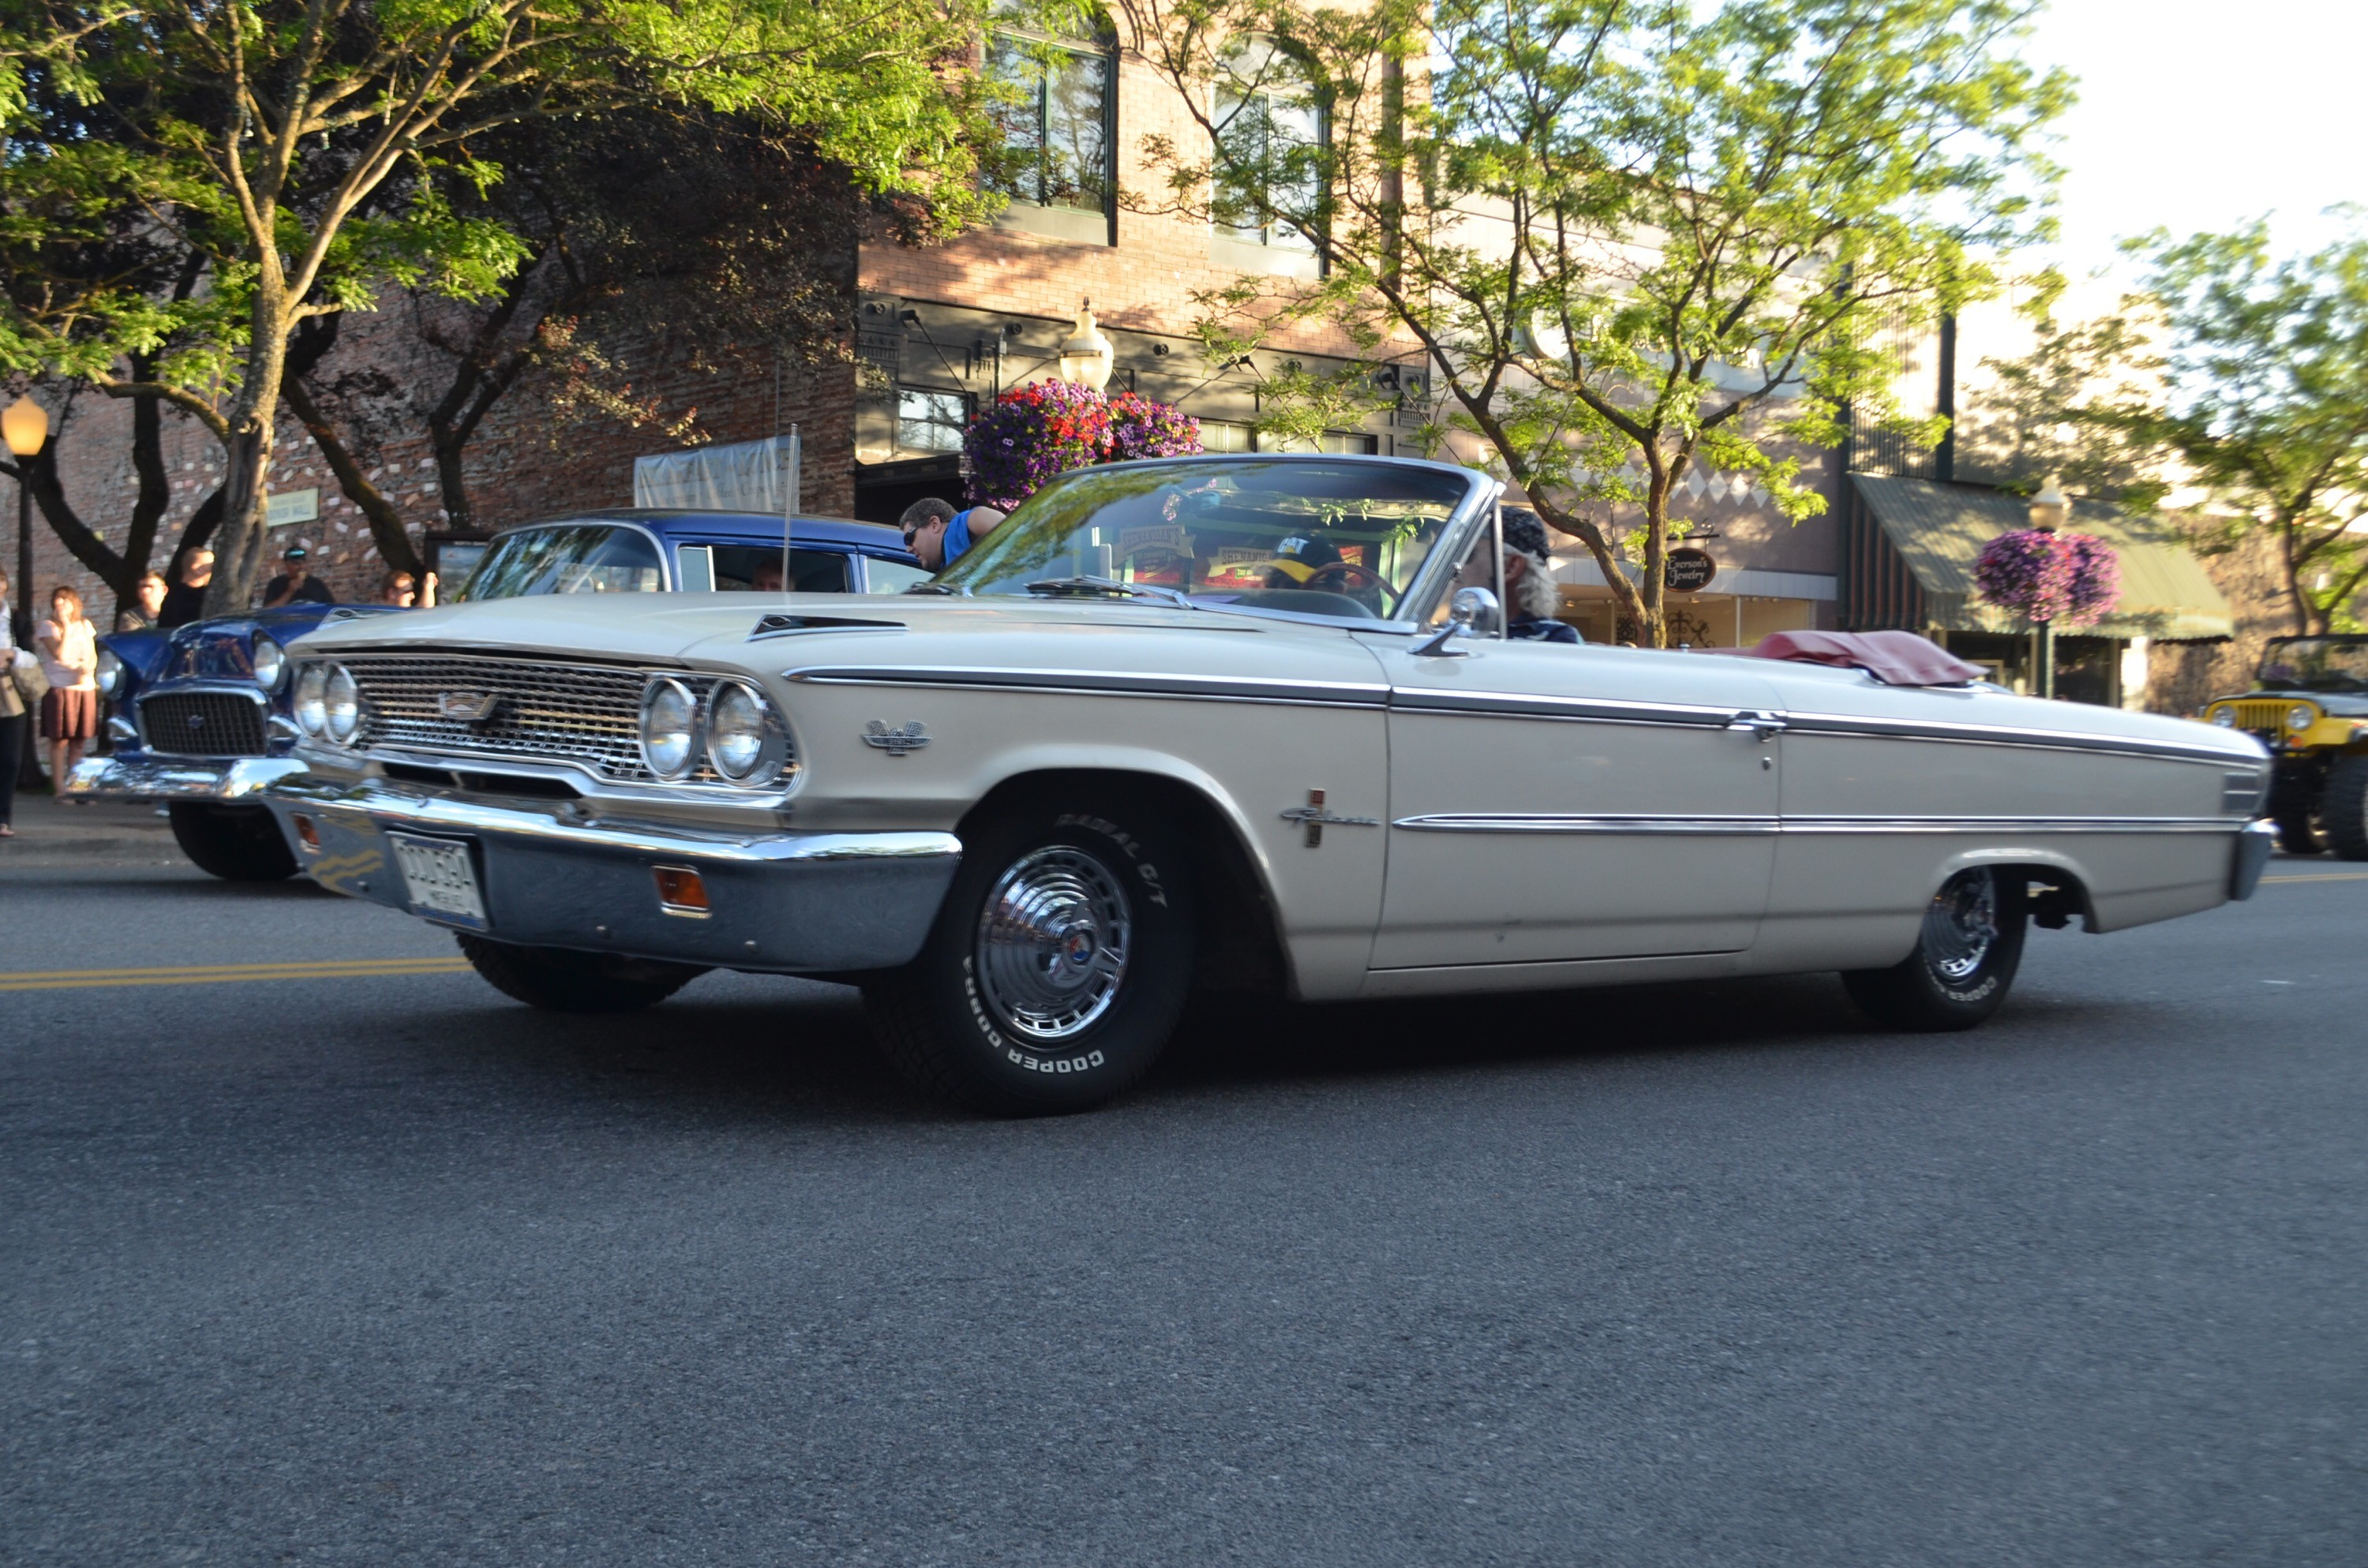 Perfect setup on this '63 Ford Galaxie convertible